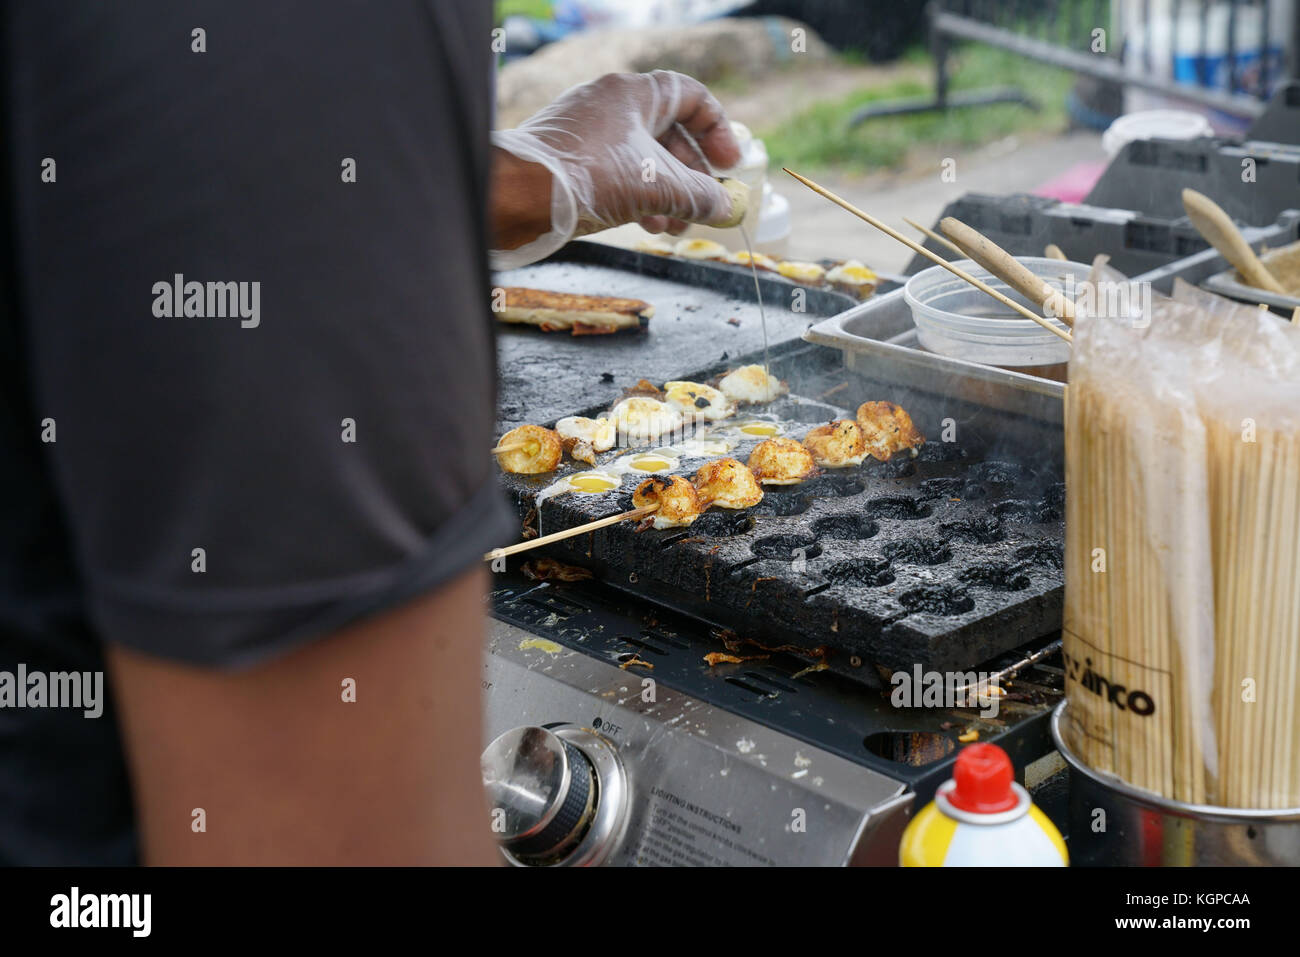 Streetfood stands in food festival, NYC - Stock Image